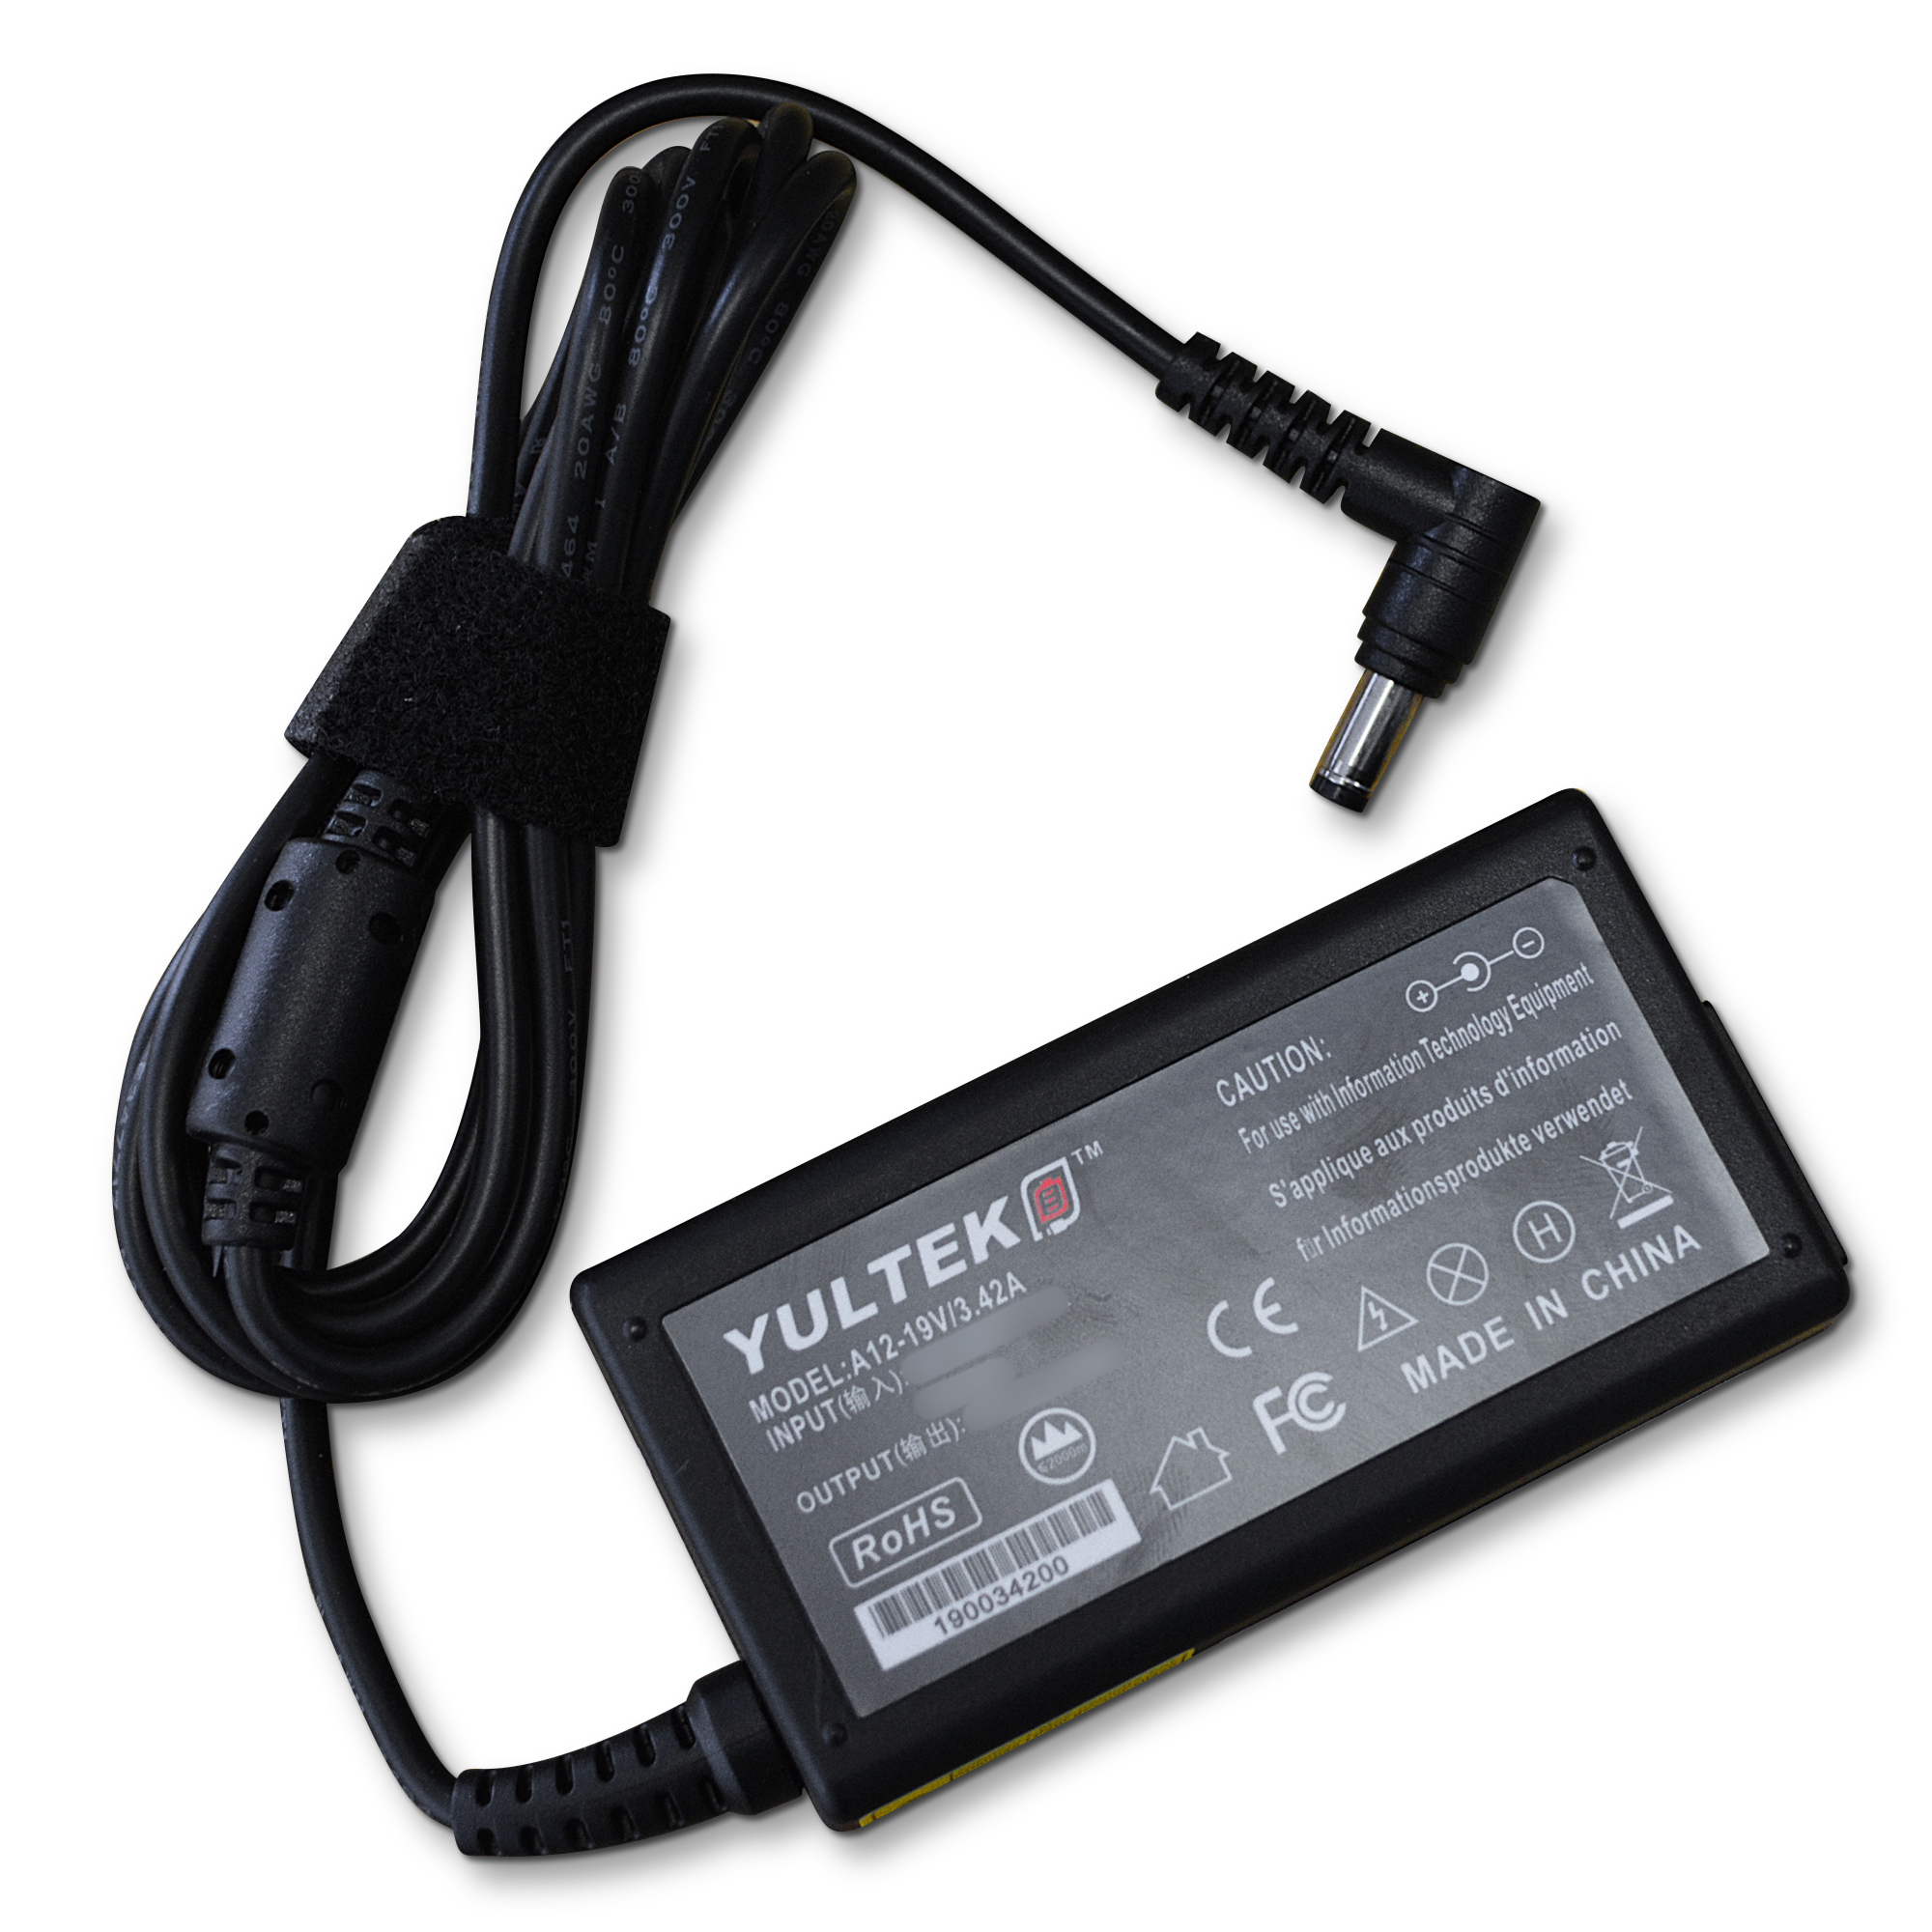 Fujitsu-Siemens Part Number IVF:6032B0014703 Laptop Charger